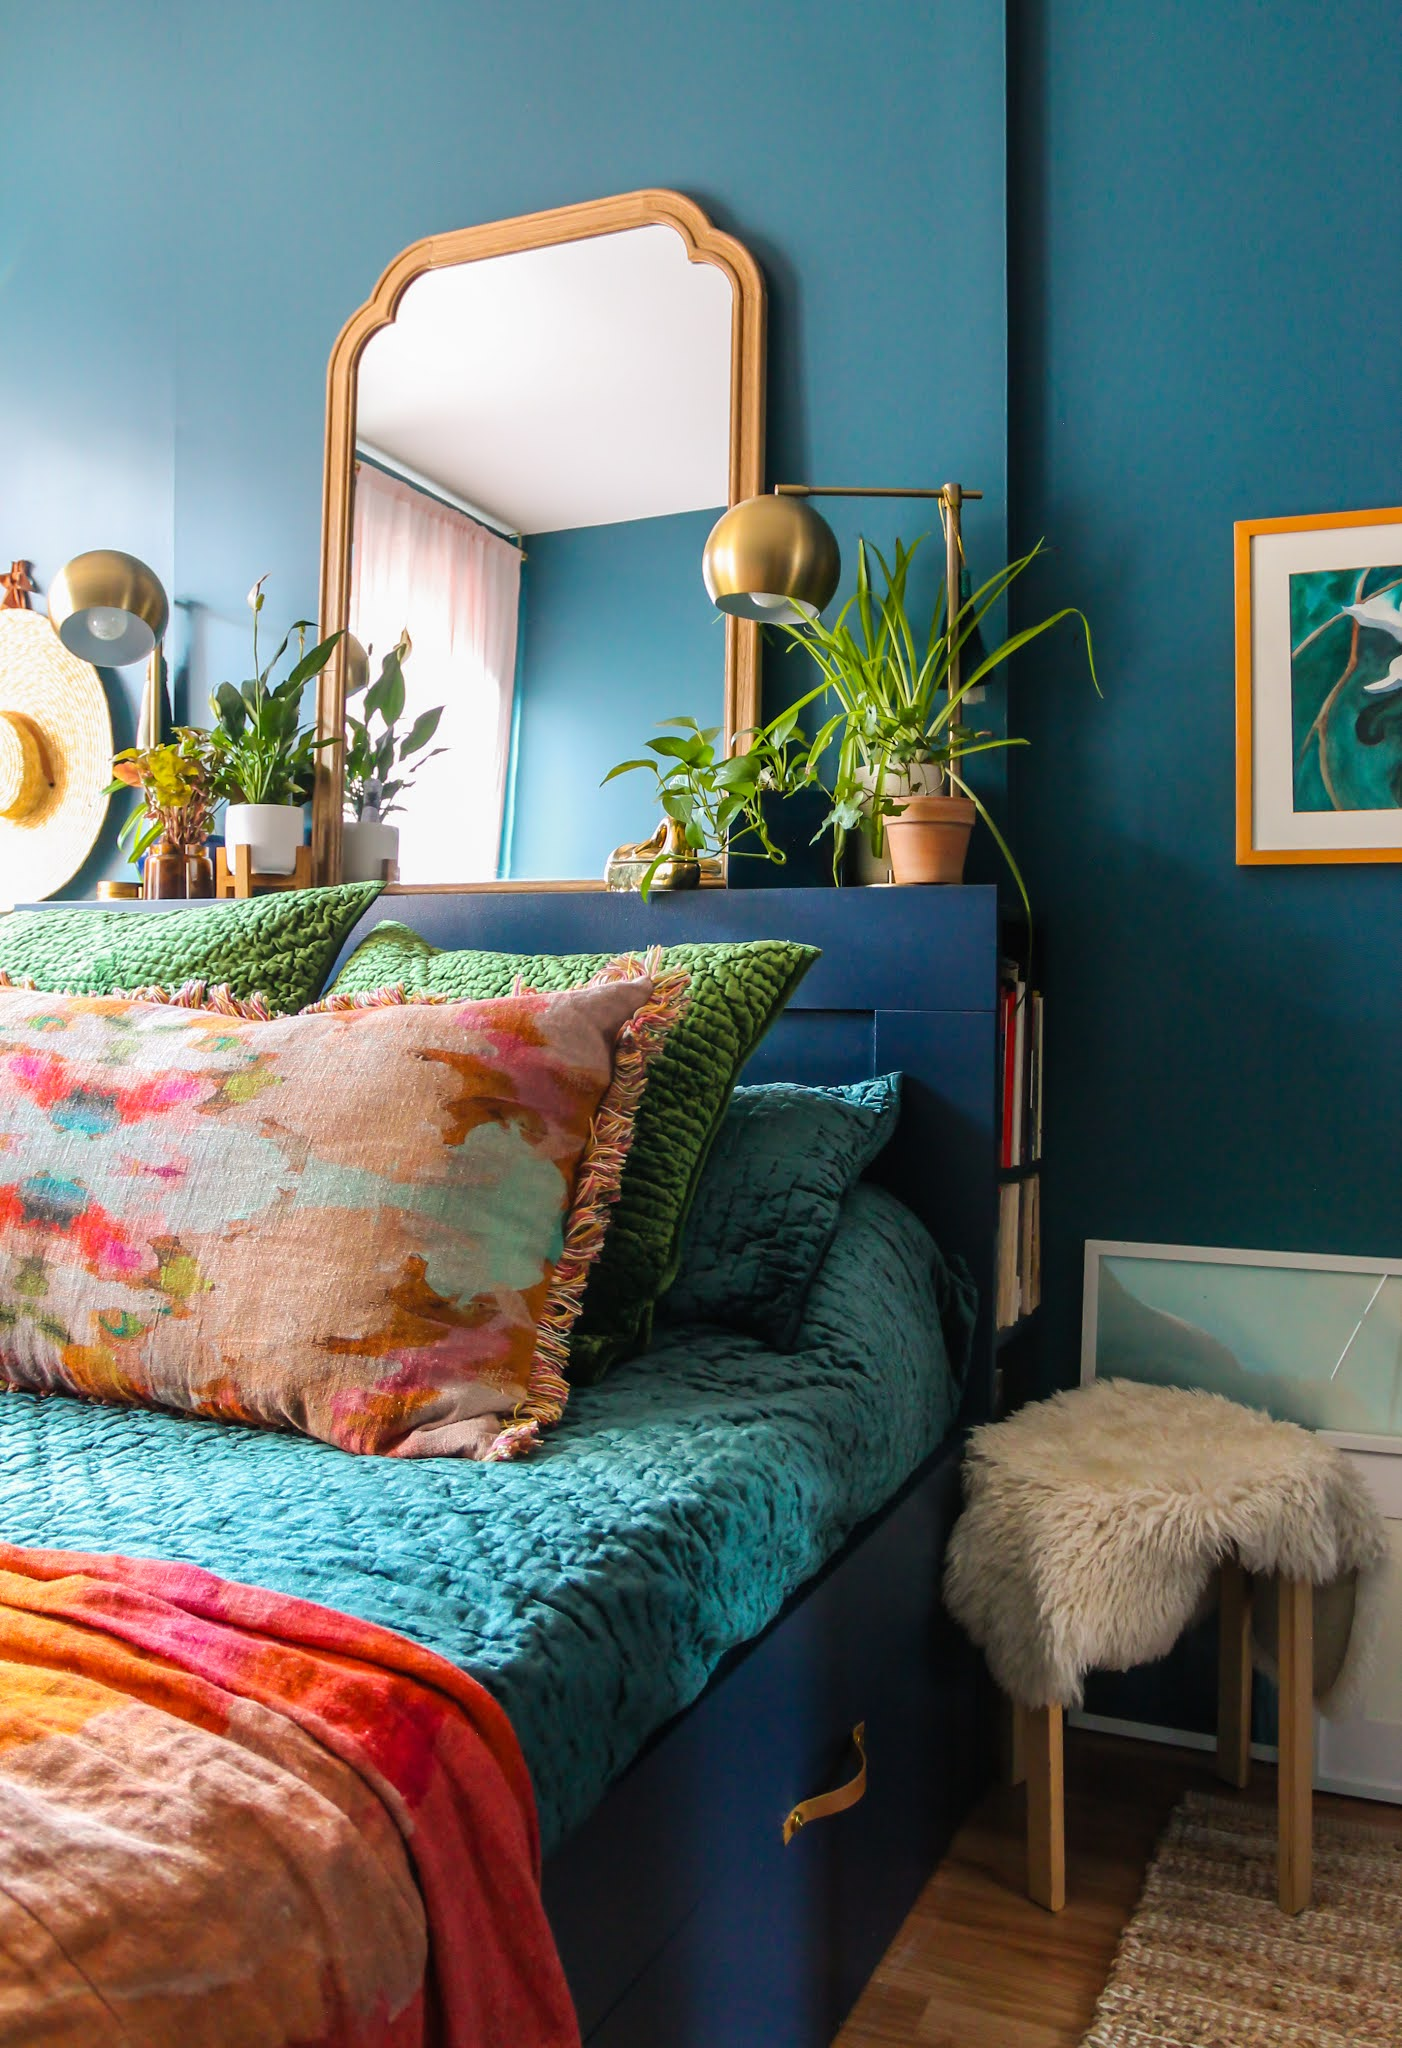 Jeweltone bedroom inspo // bedrooms with plants // moody bedrooms // how to add color to your home // colorful home inspo // blue bedroom // bedroom with plants on headboard // plant headboard // ikea brimnes bed // easy Ikea hacks